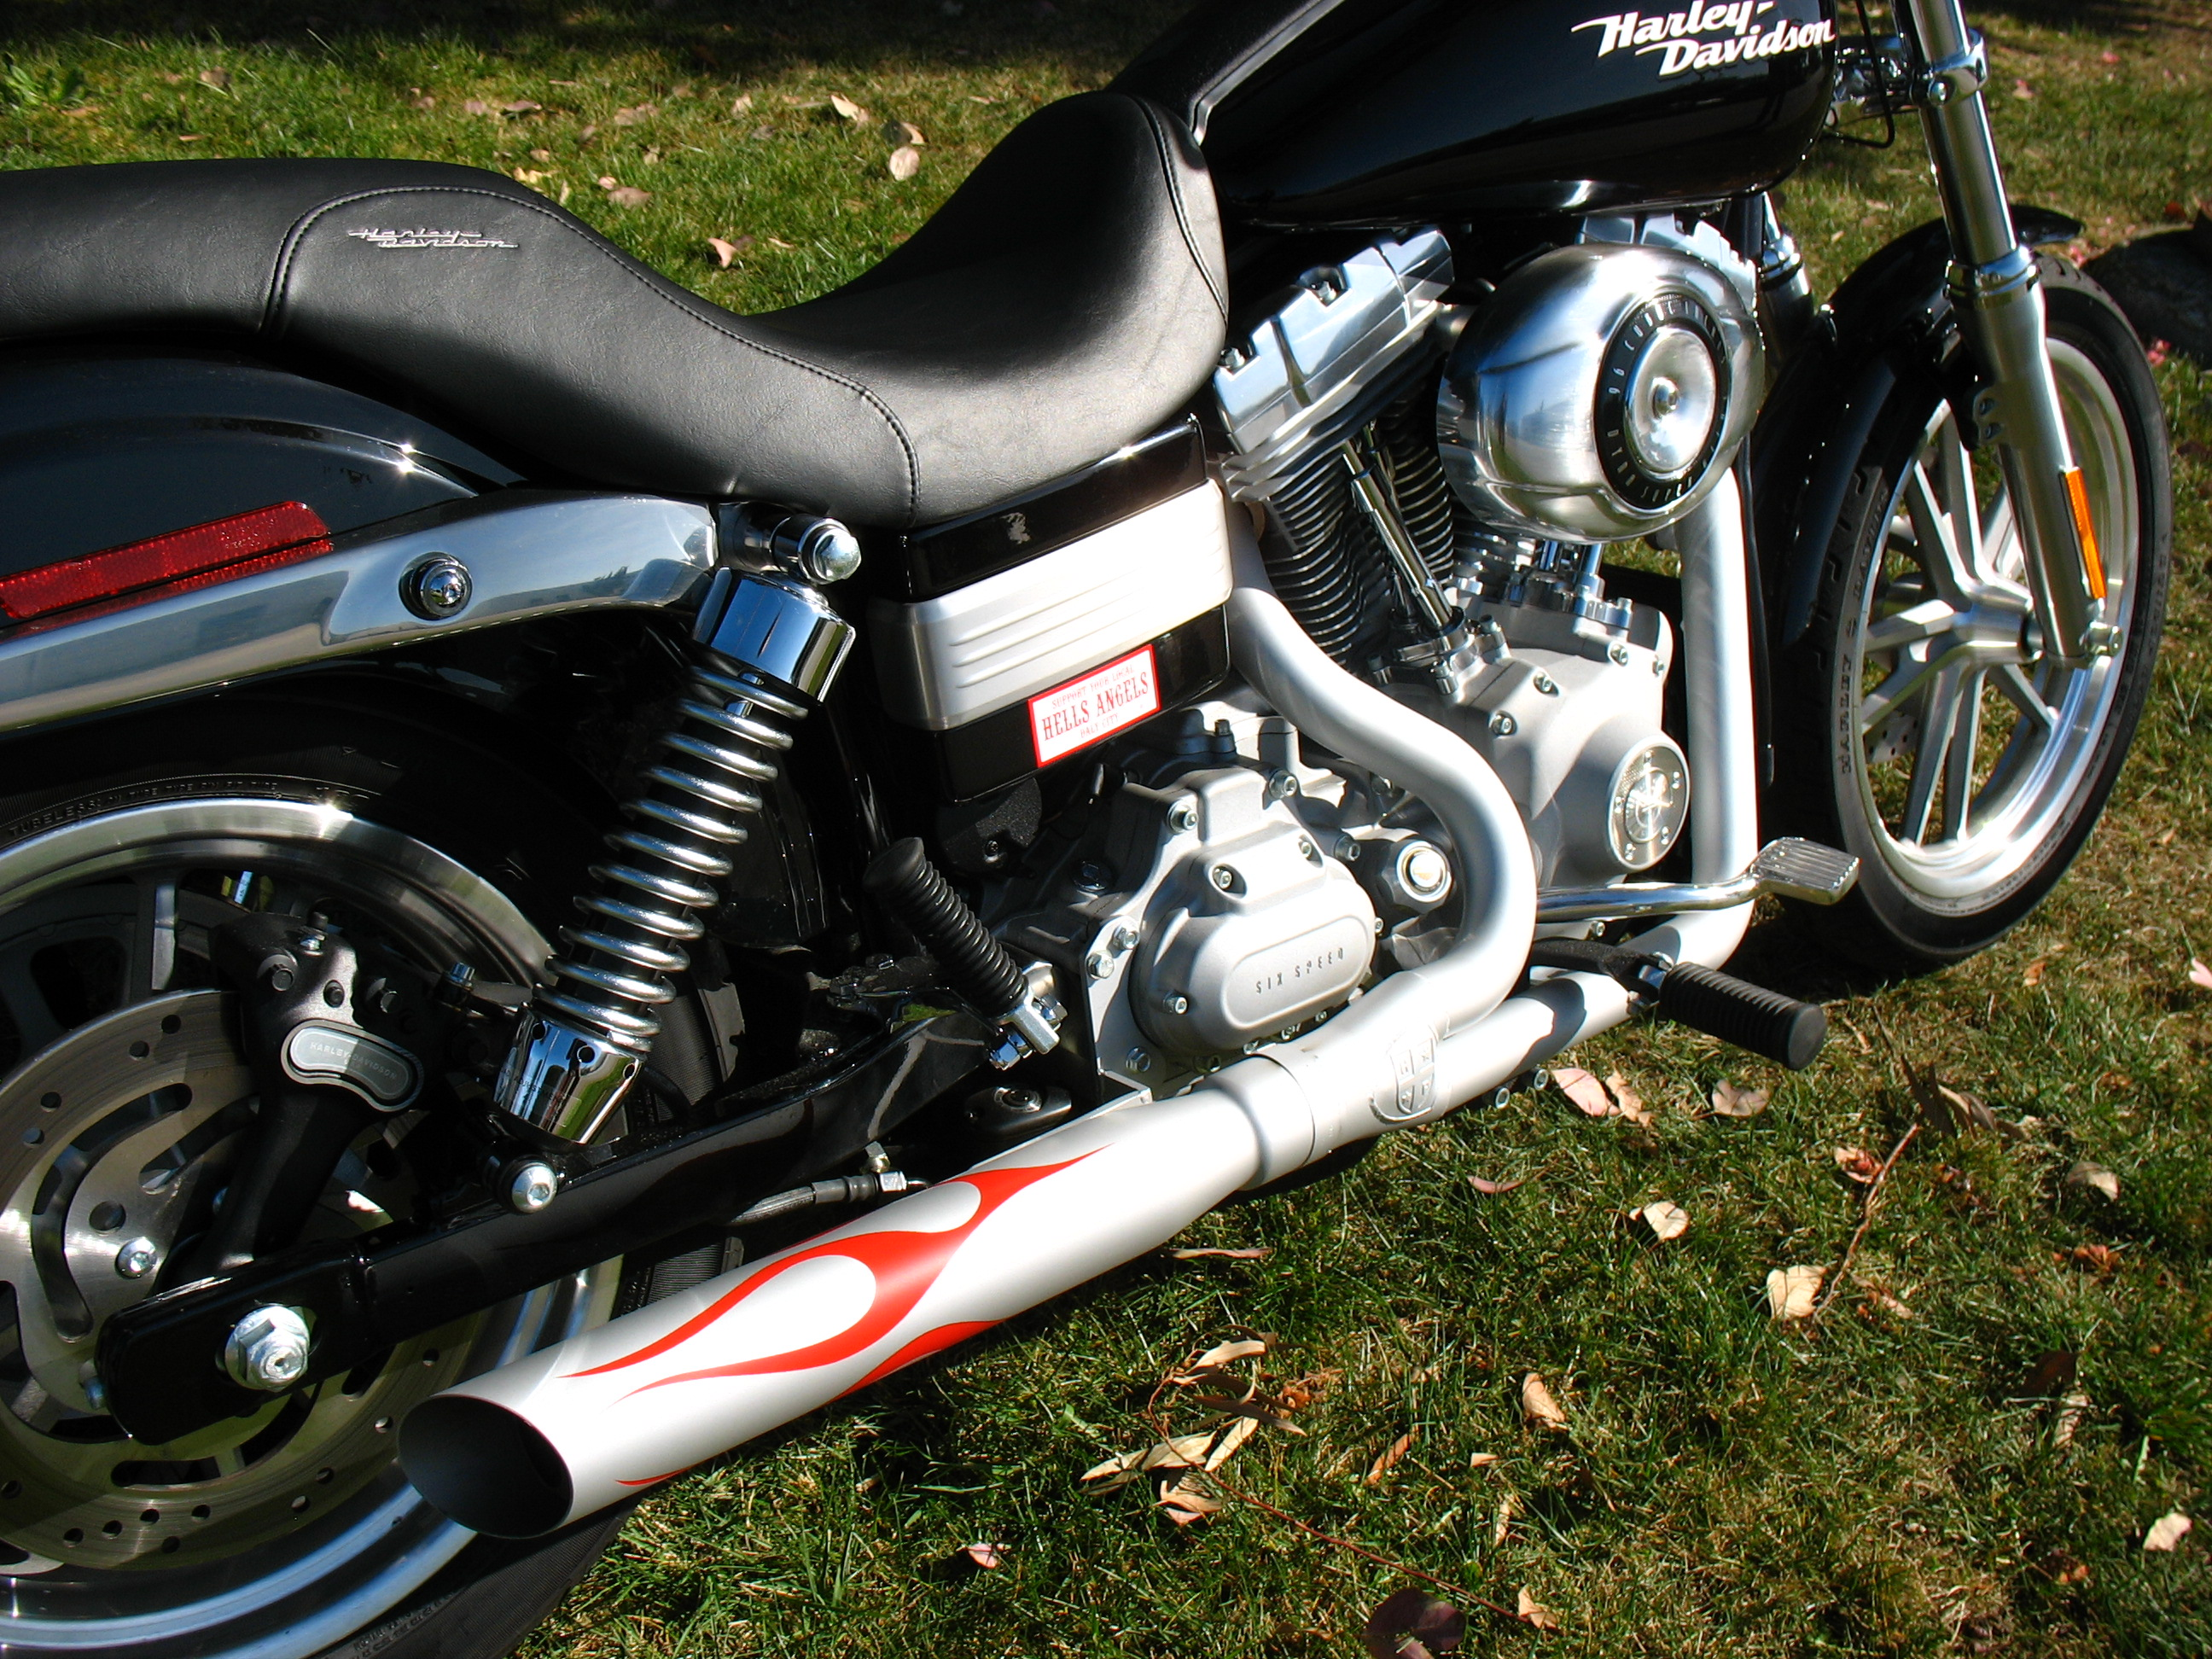 Harley Davidson at Other exhaust